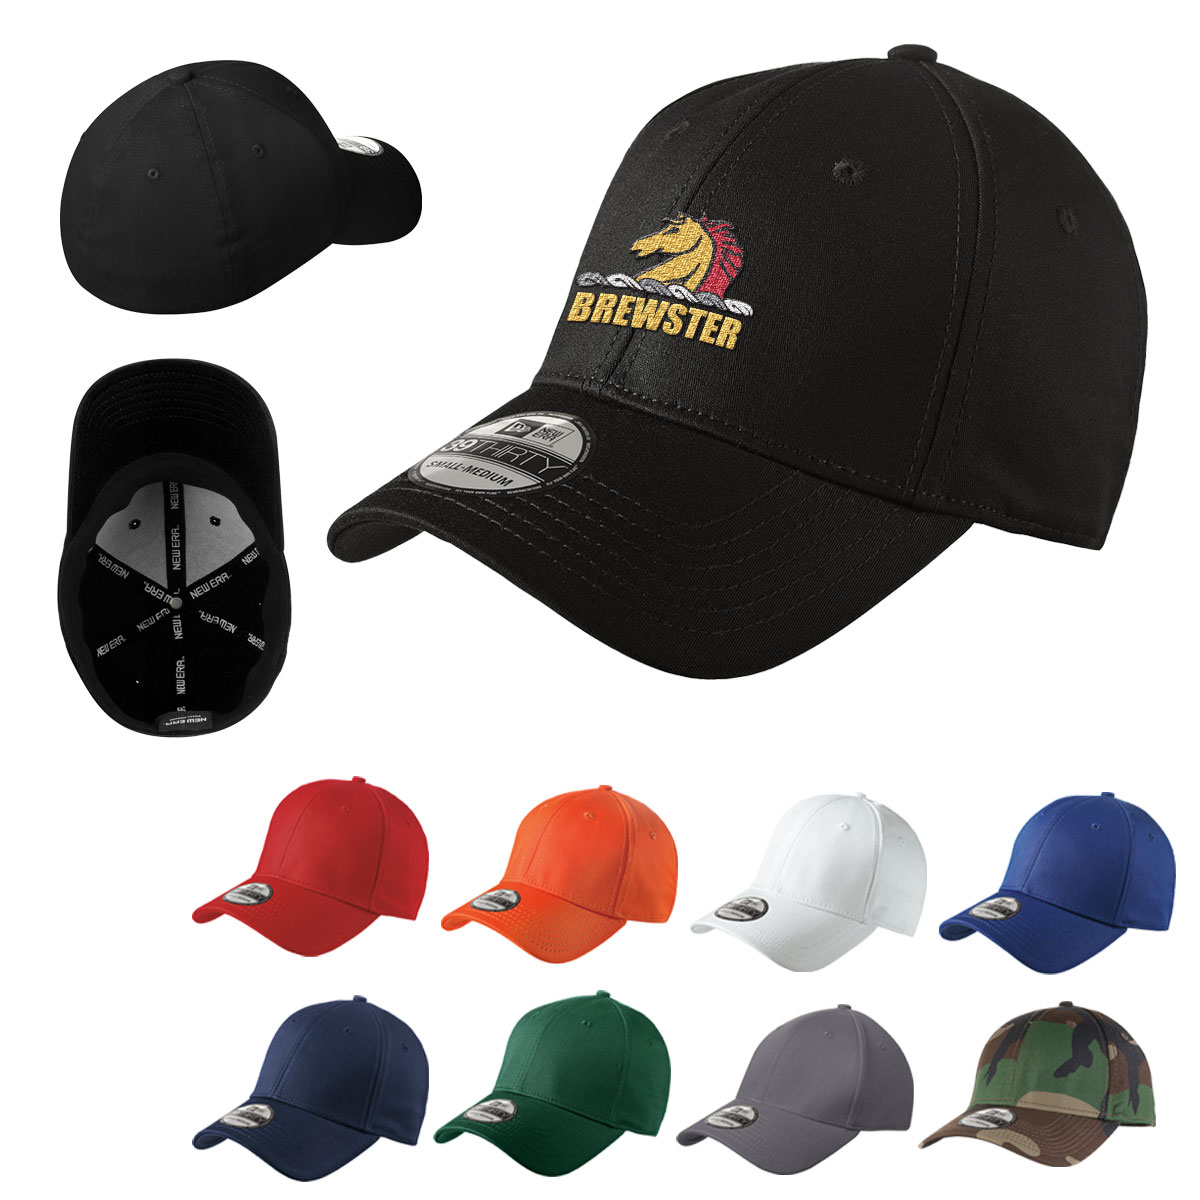 e36121815ea NE1000 New Era® Structured Stretch Cotton Cap - Hit Promotional Products